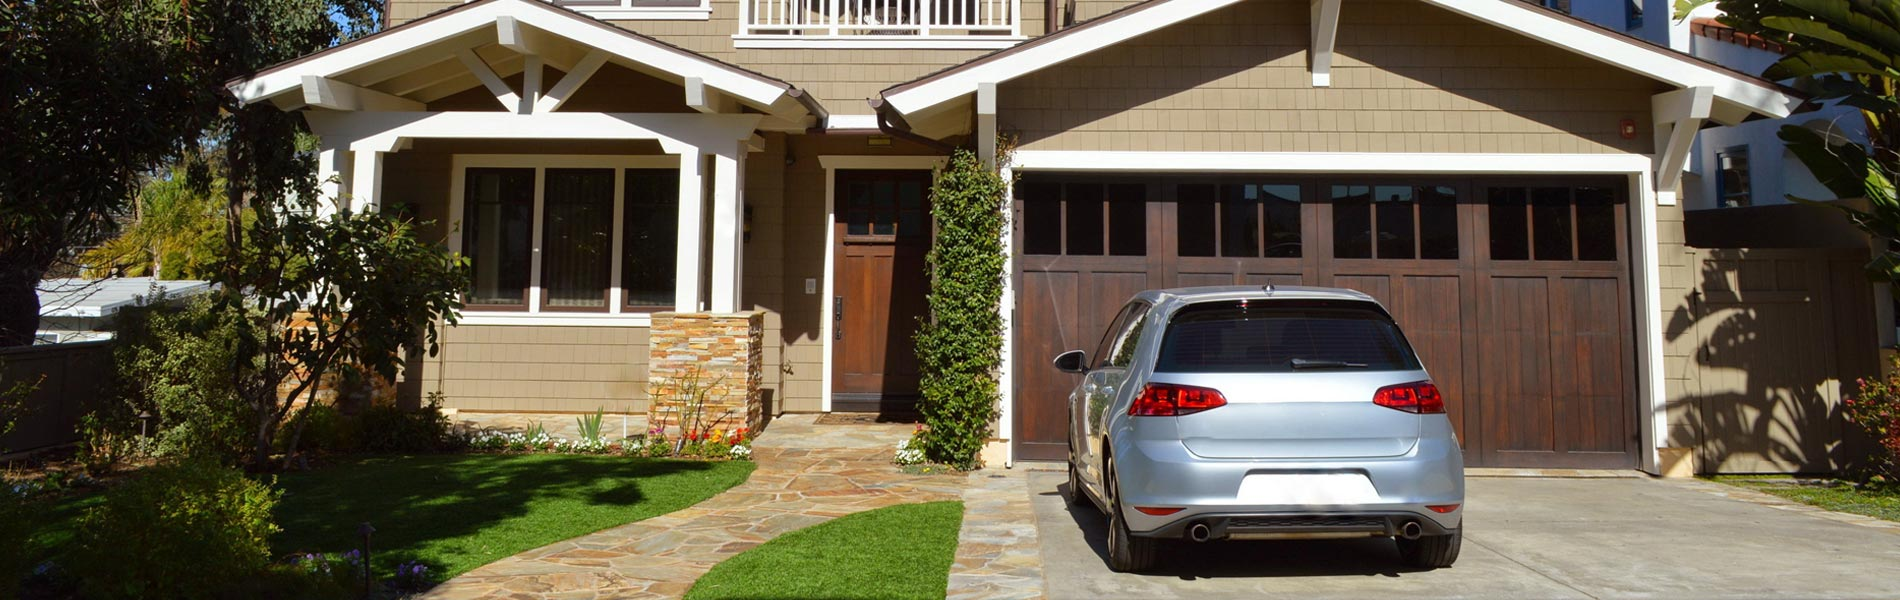 United Garage Door Phoenix, AZ 844-270-0087